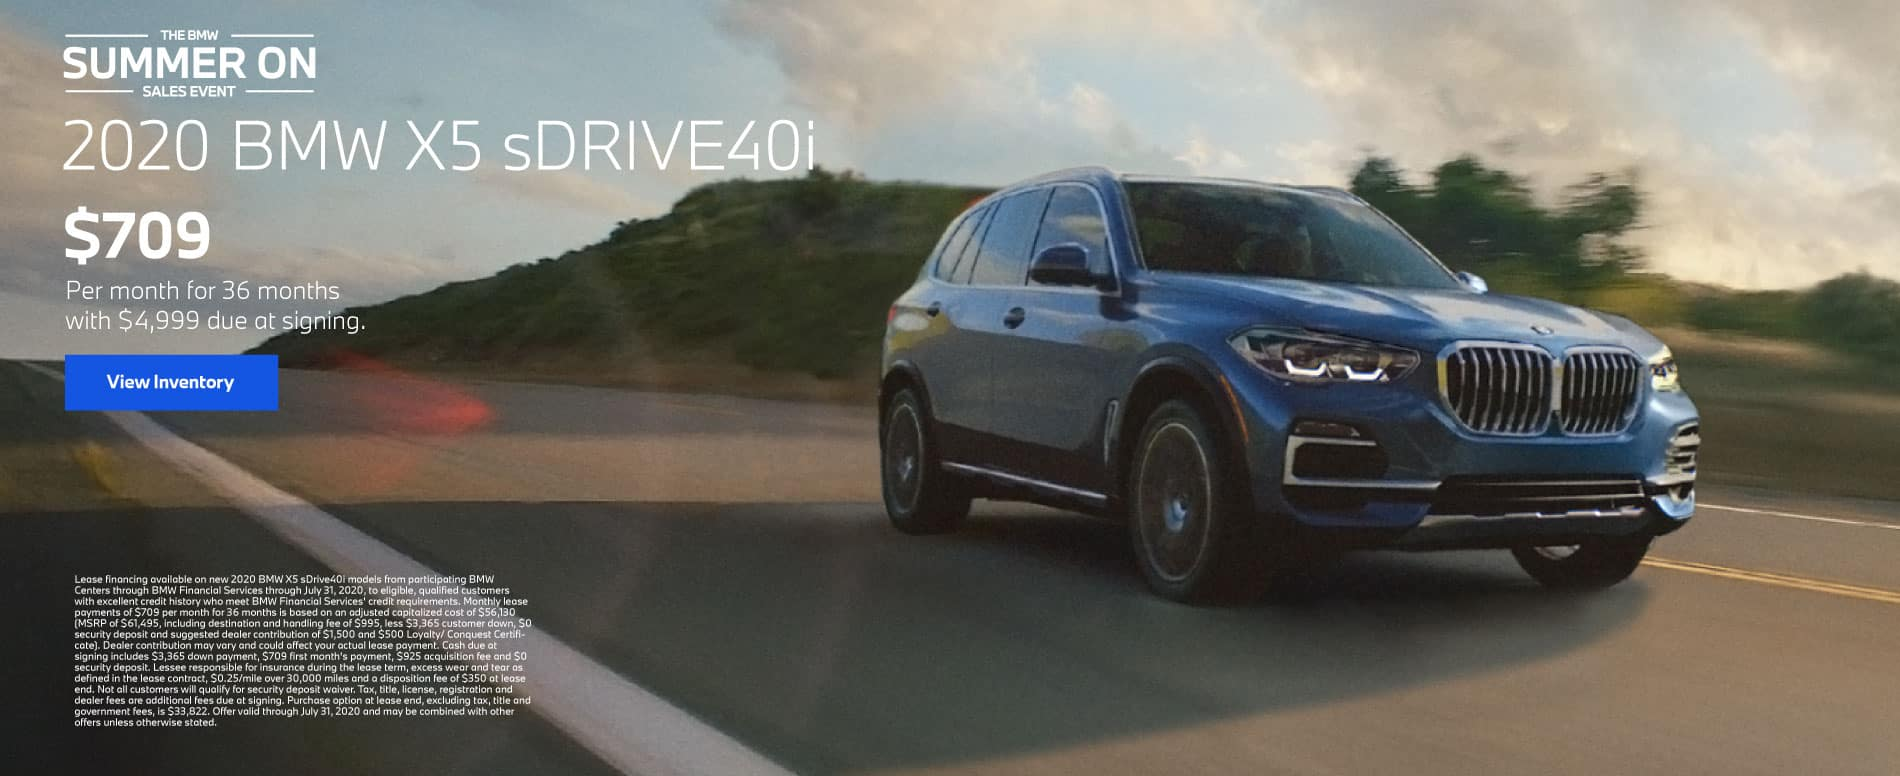 2020 BMW X5 sDrive40i $709 a month for 36 months | View Inventory